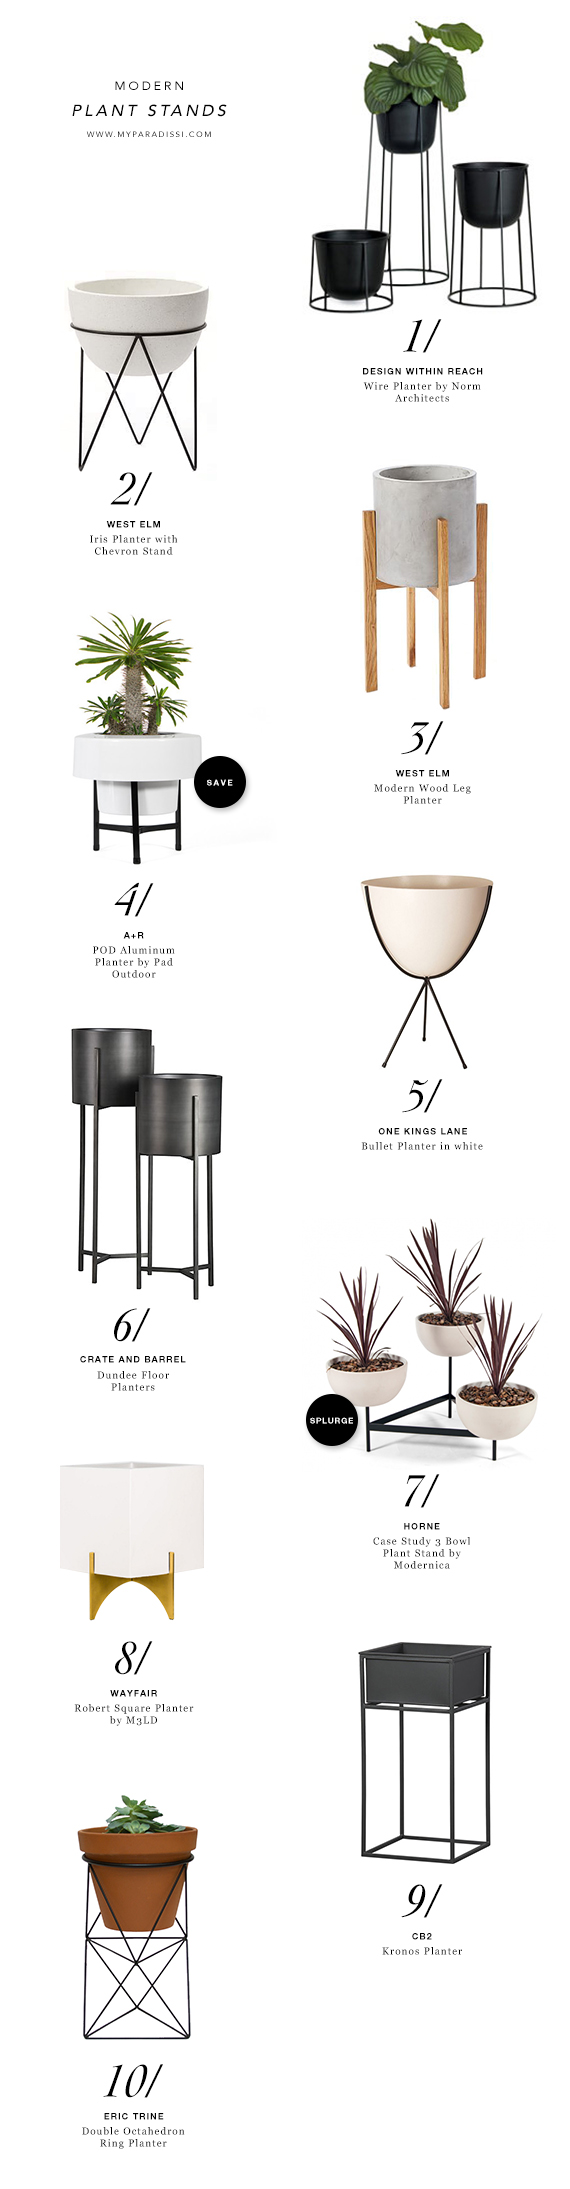 Modern Plant Stands